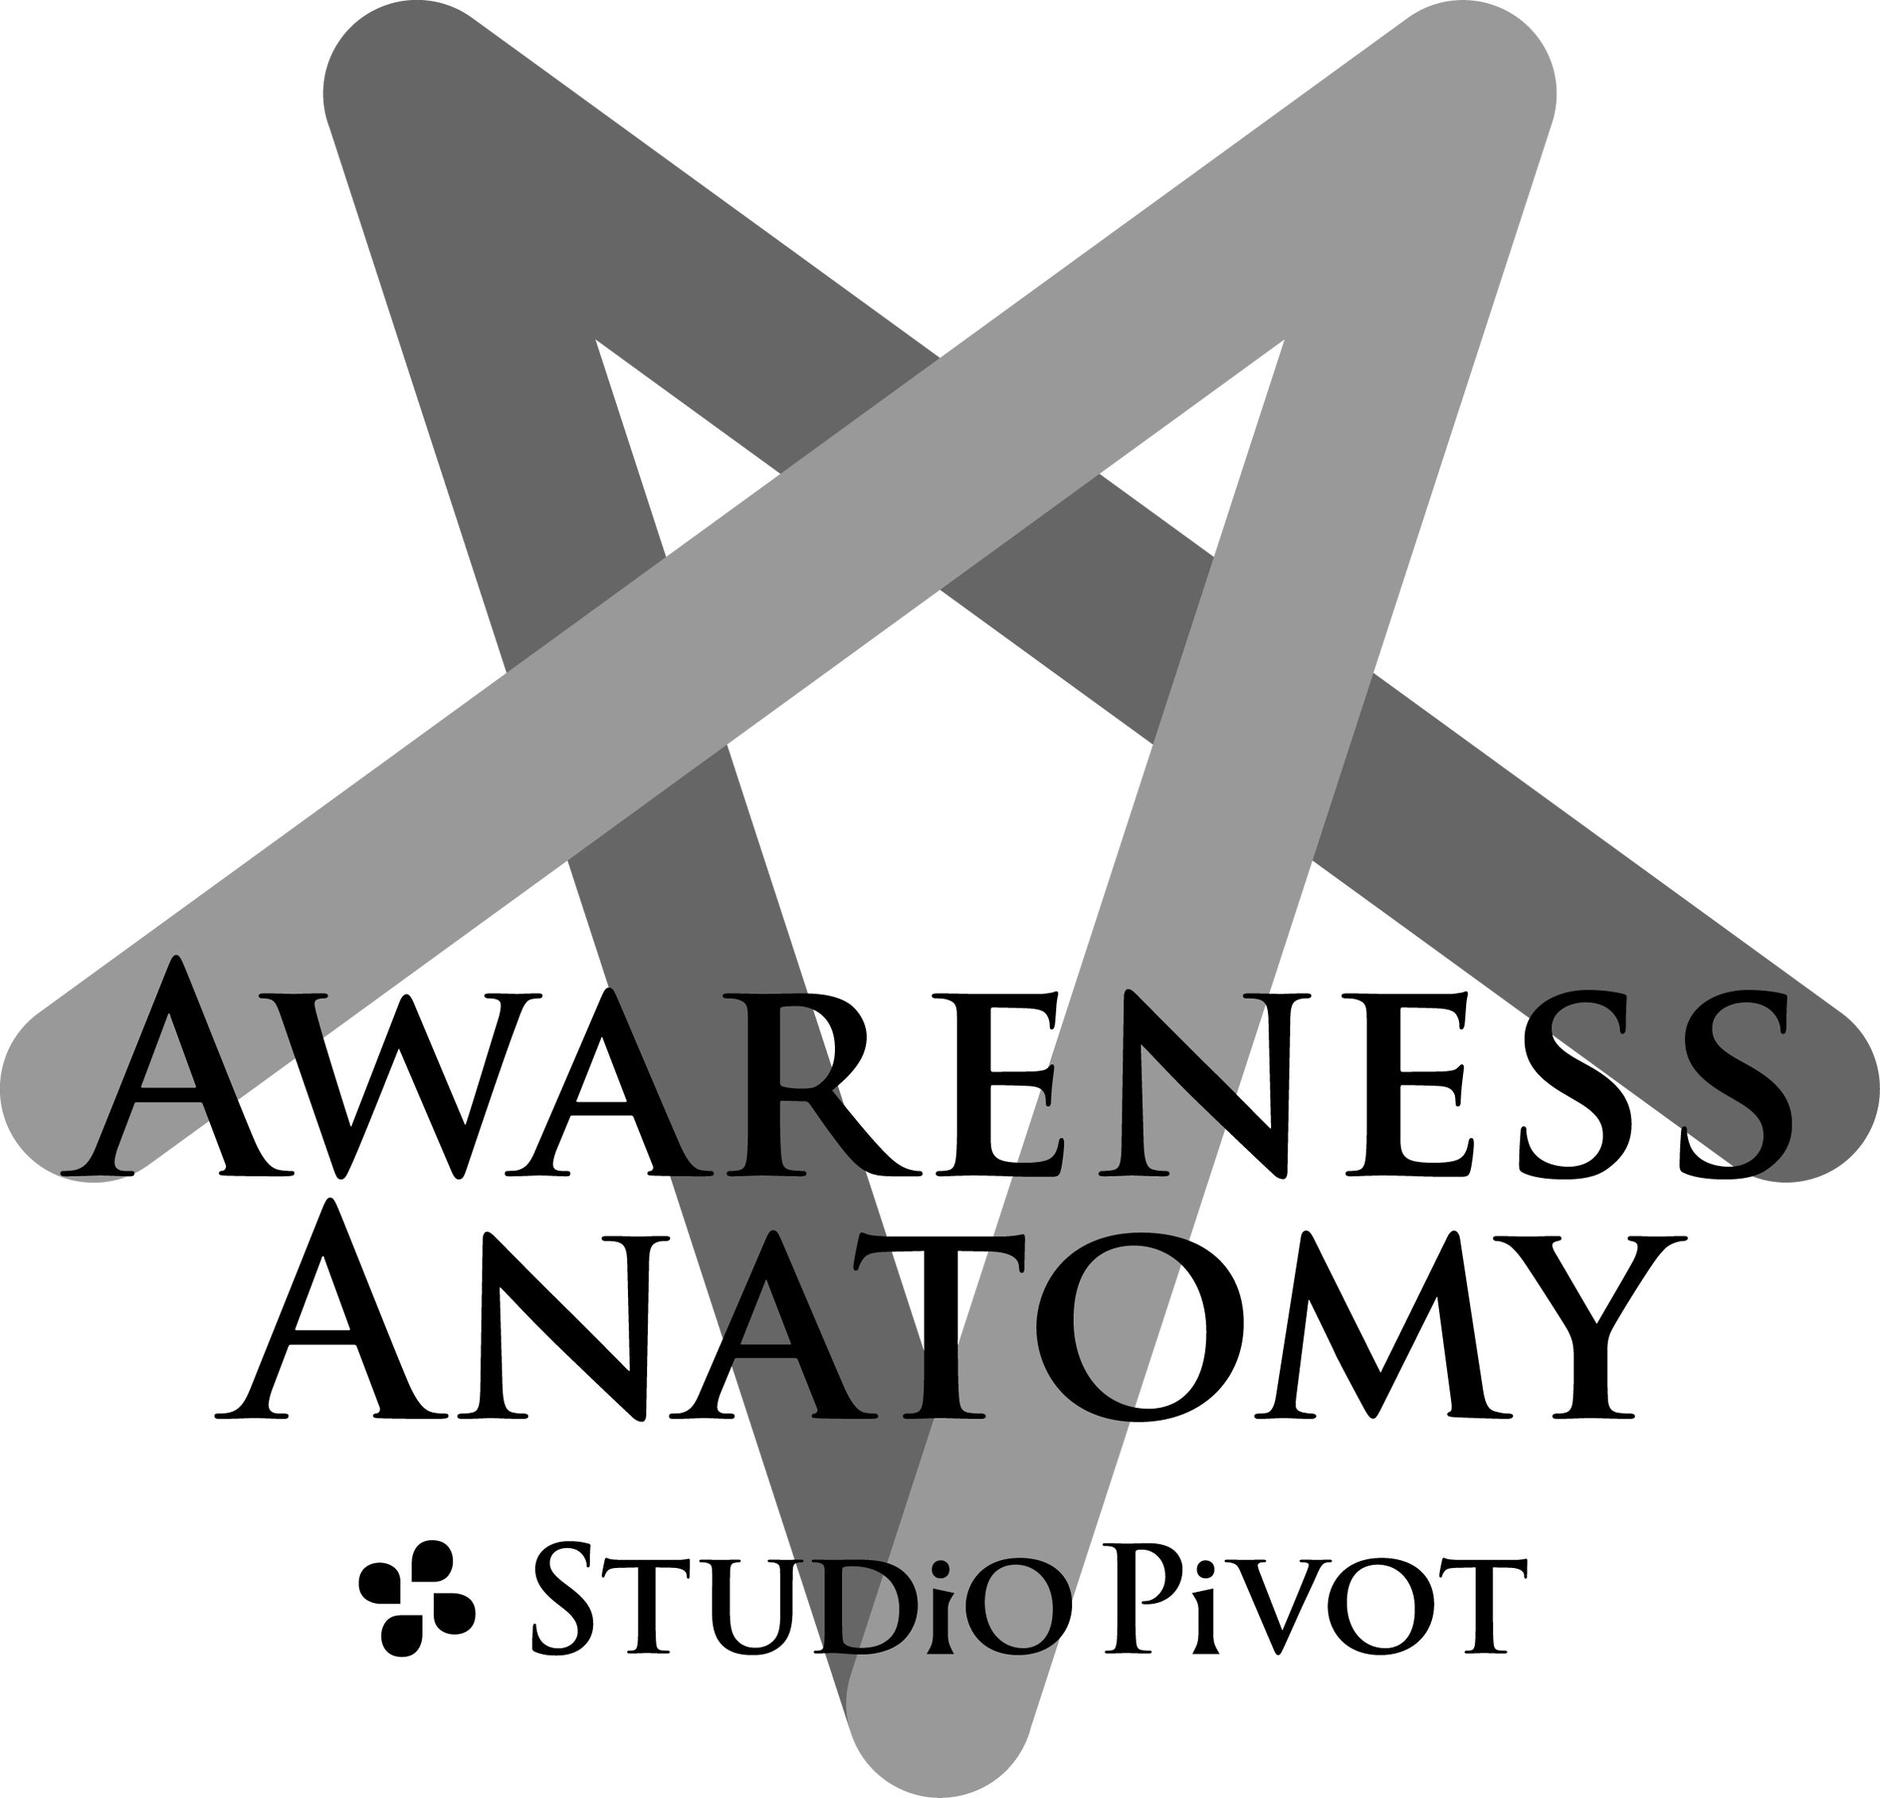 STUDiO PiVOT Net shop